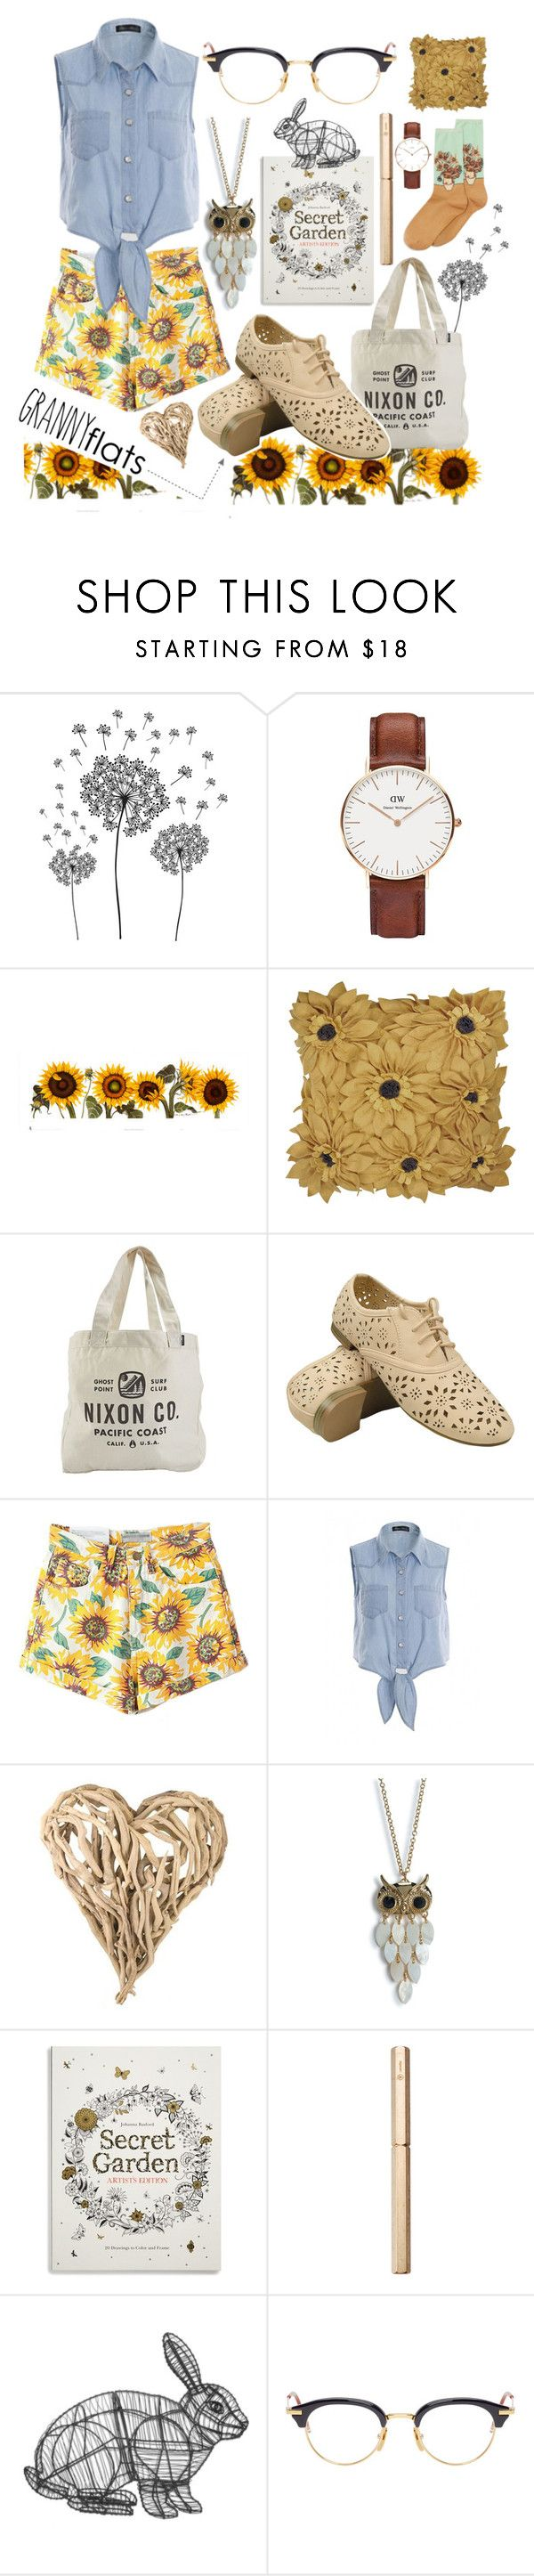 1000 Ideas About Hot Granny On Pinterest Hottest Moms